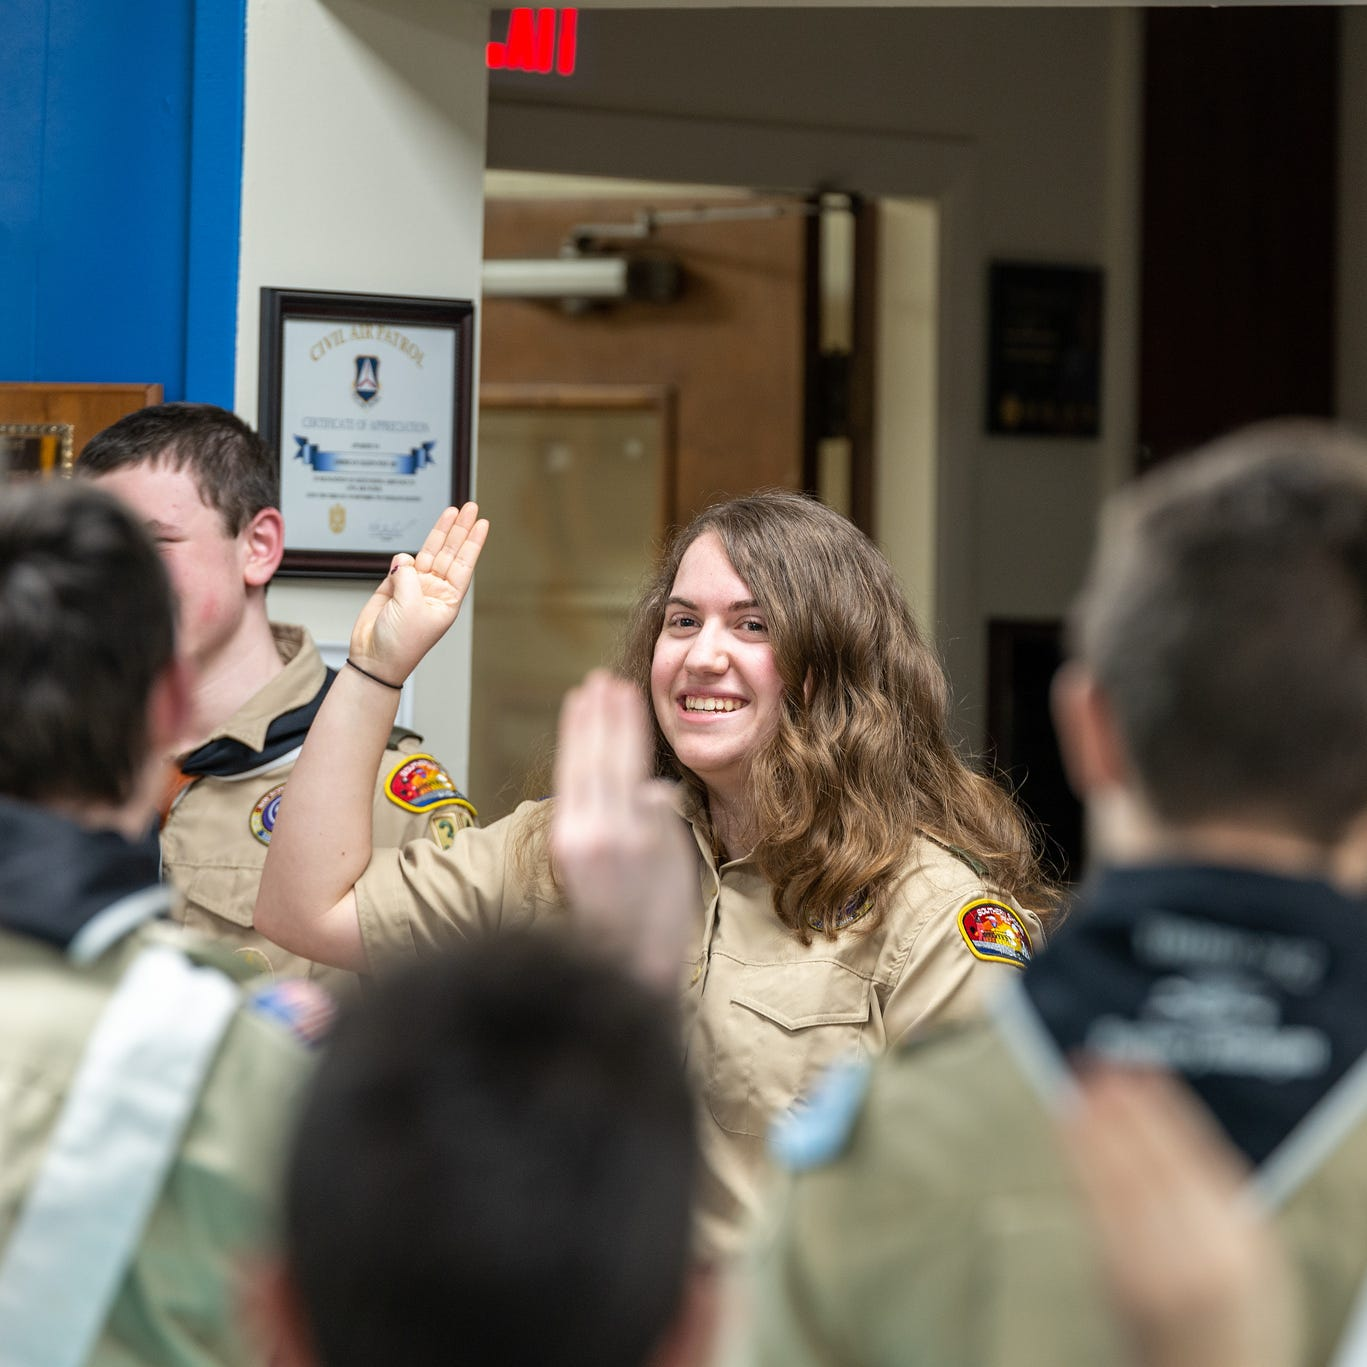 History made in Pinckney as girls become first female Scout troop in county